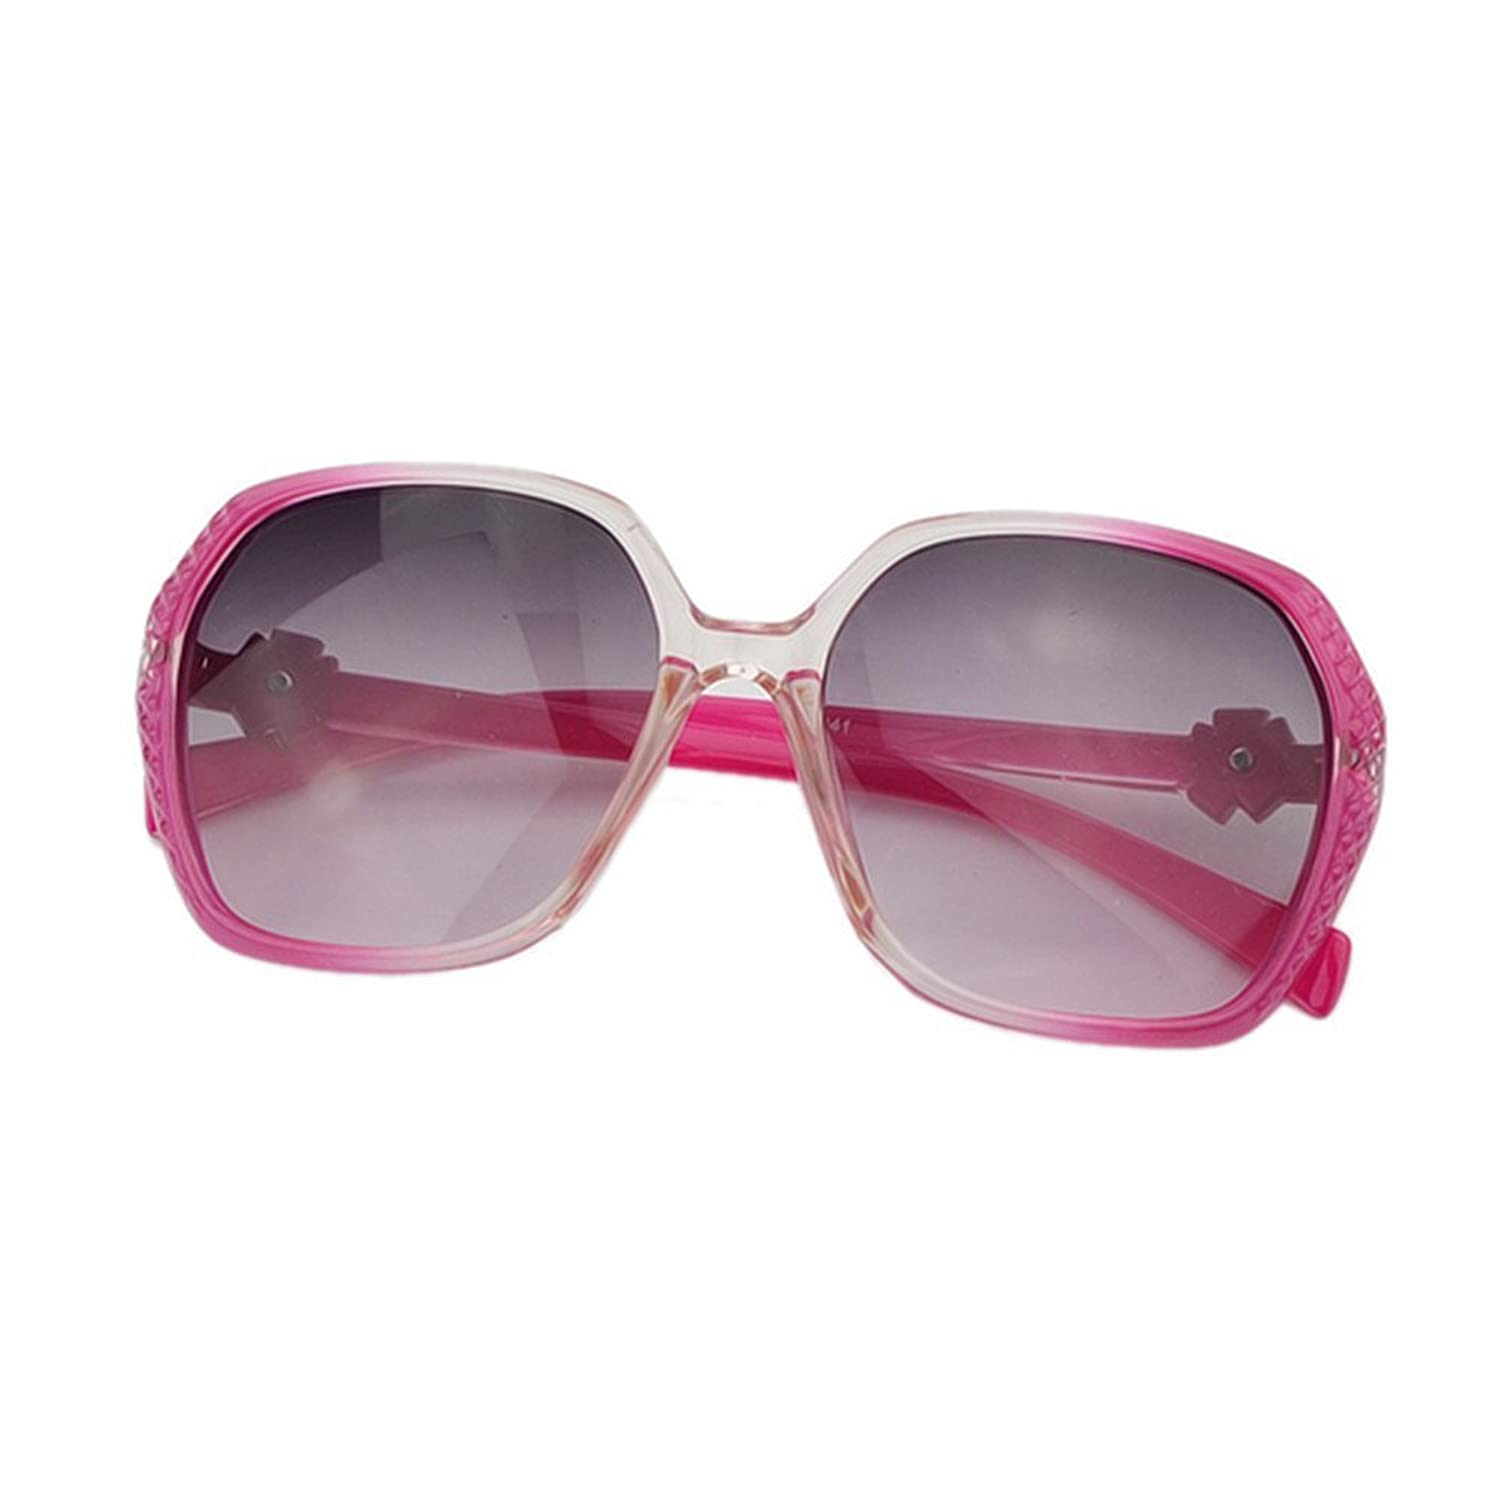 Feelontop@ Resin Hotpink Leopard Floral Acetate Frames Sunglasses with Free Glasses Boxes